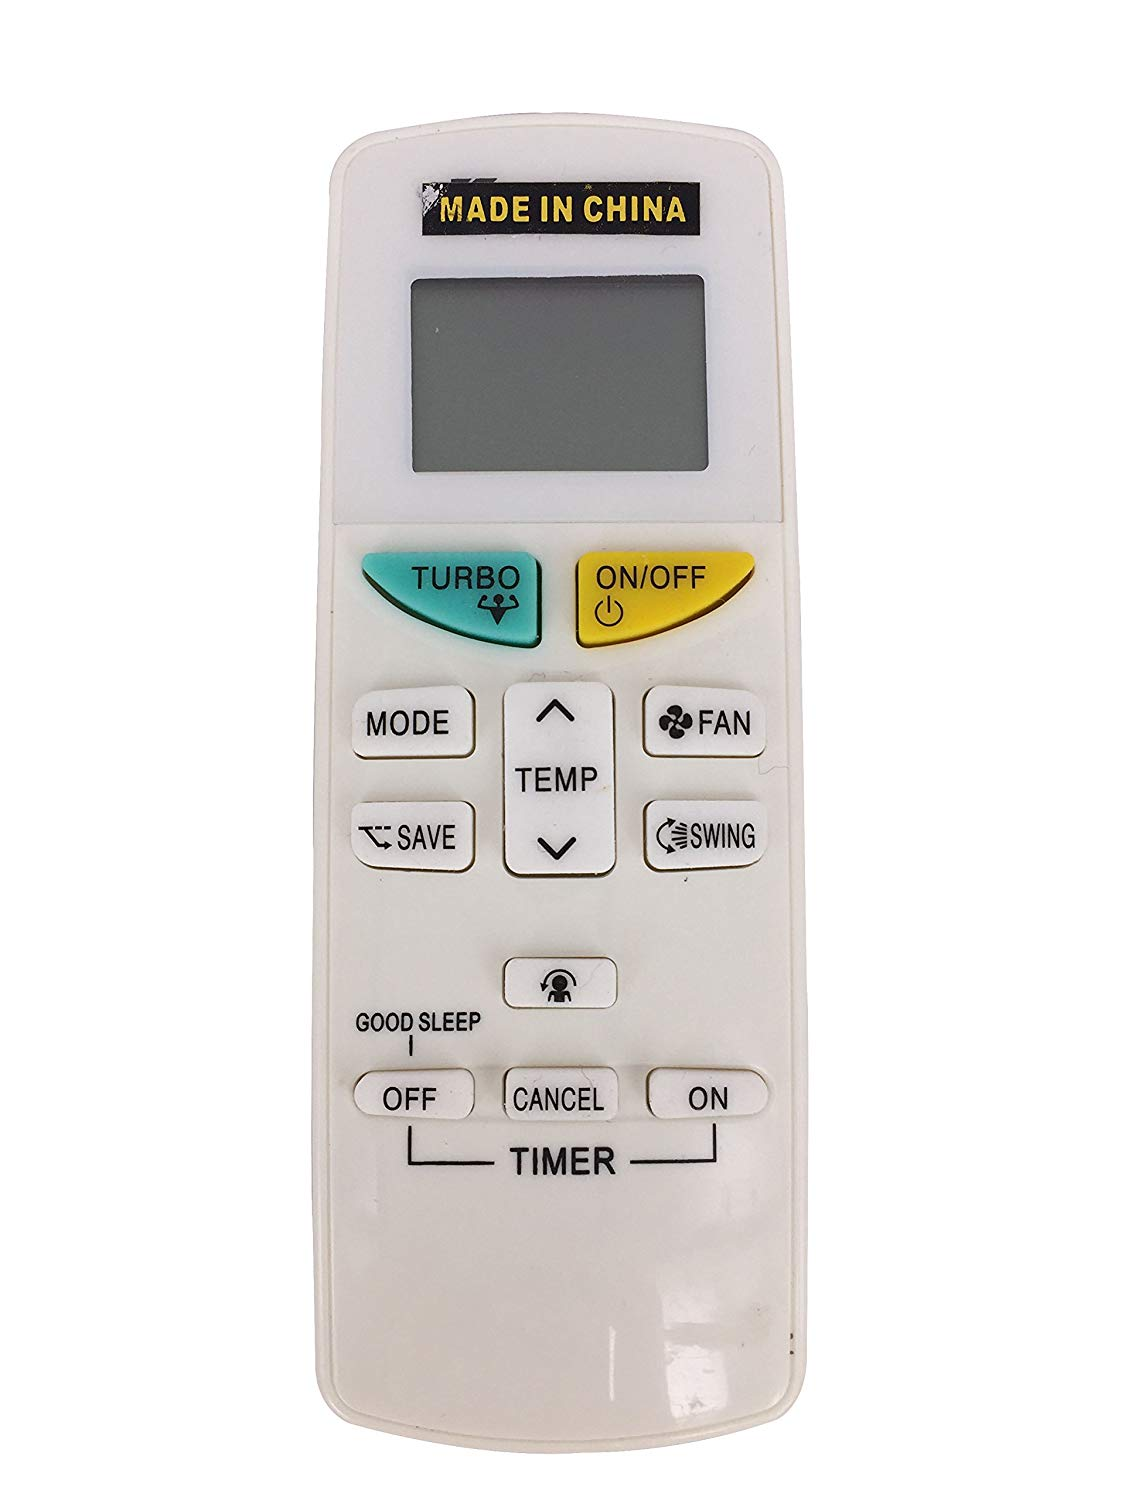 daikin ac remote control manual japanese